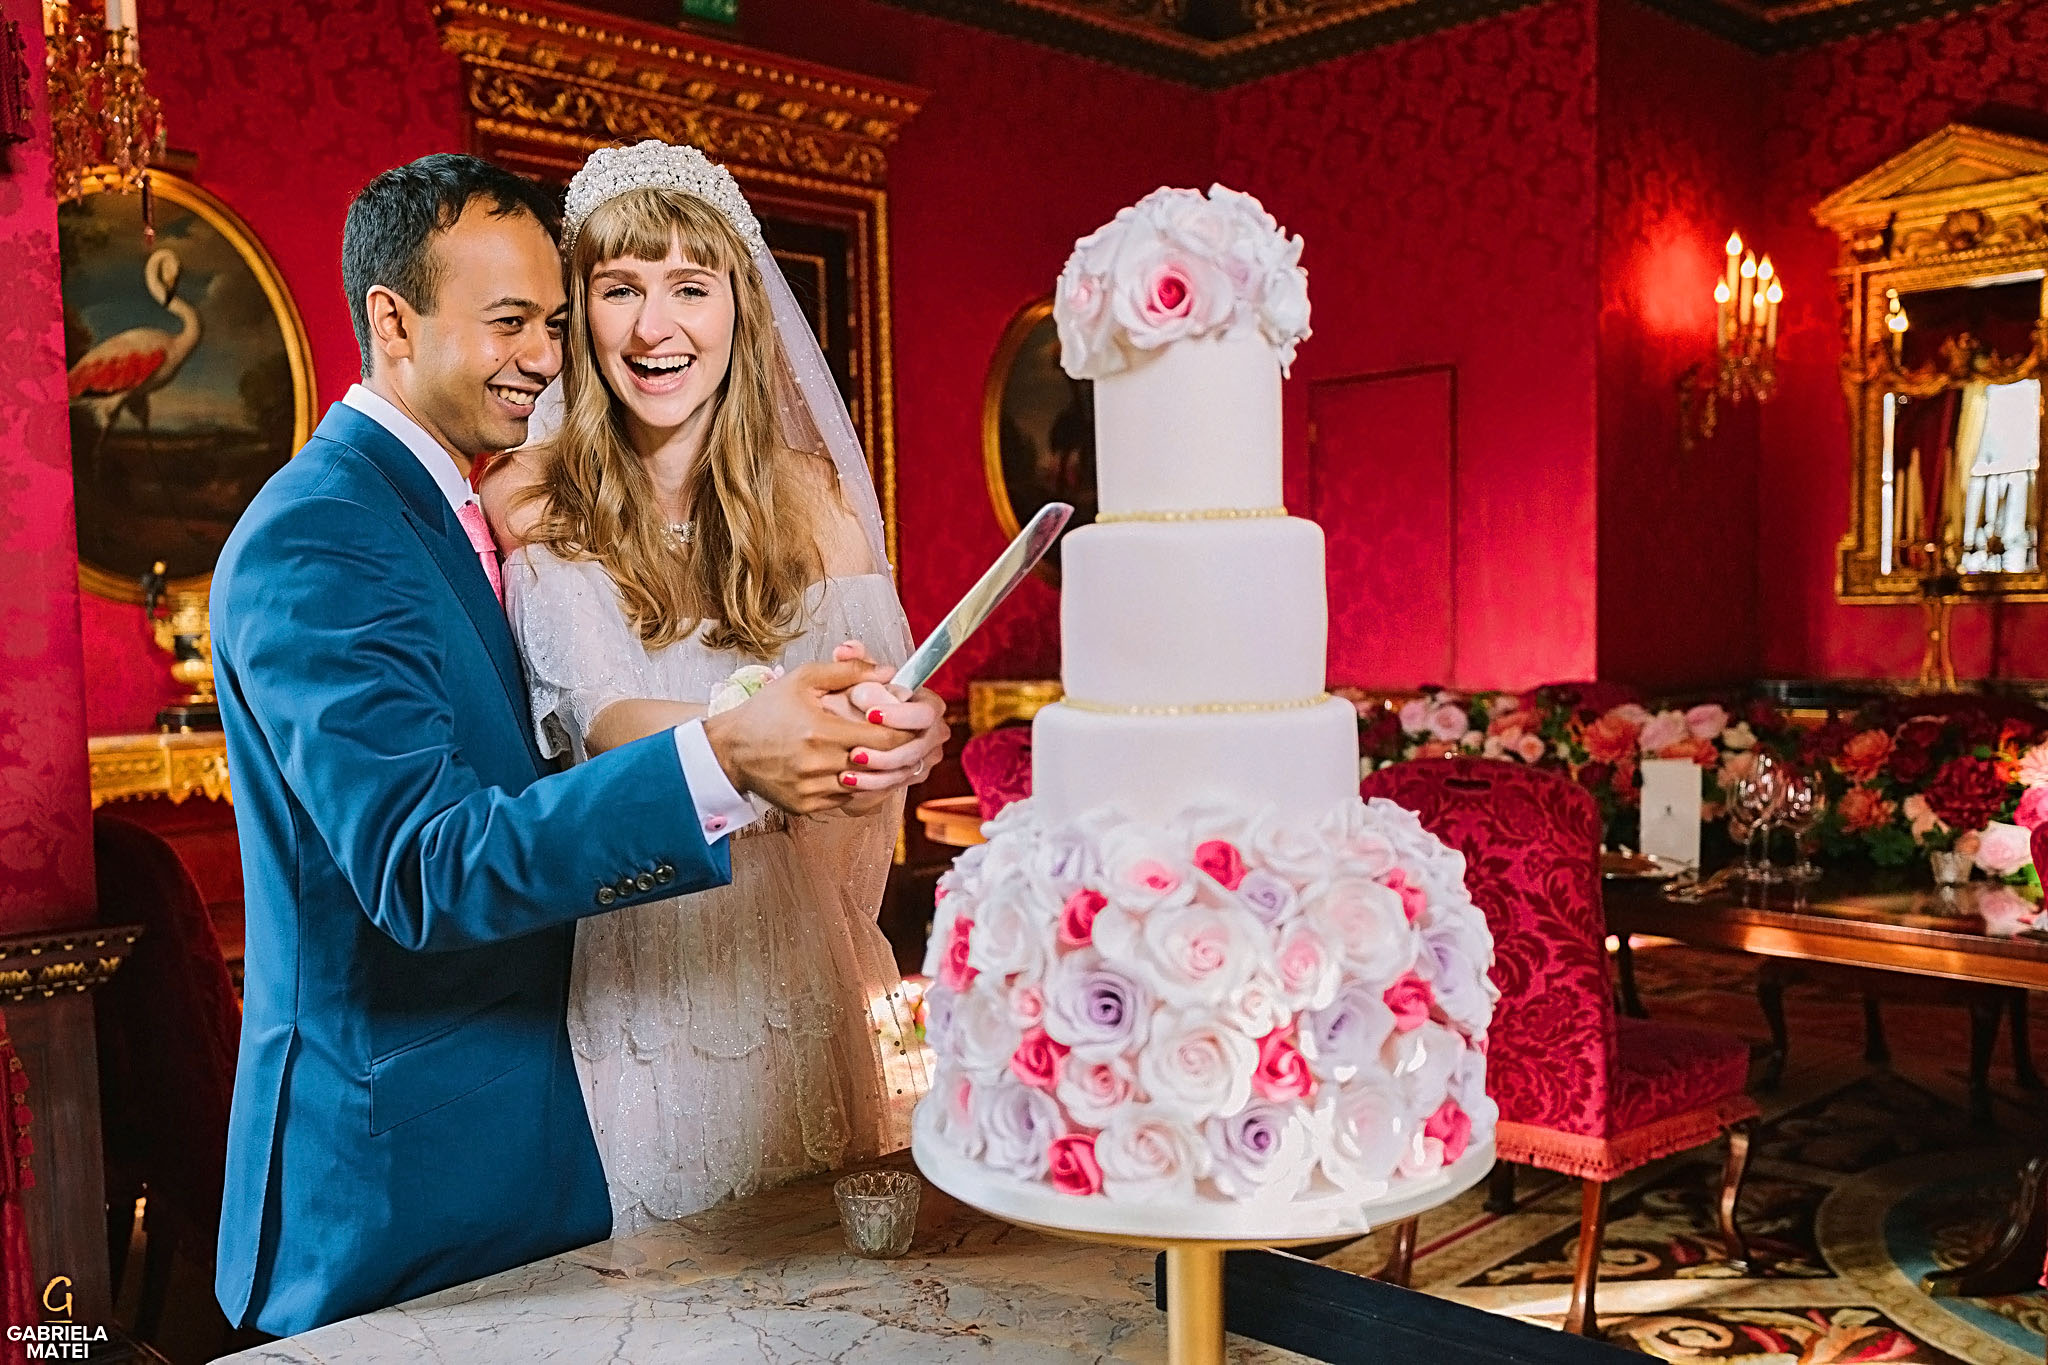 Bride and groom cutting an elegant cake , decorated with beautiful flowers, in William Kent House Room at The Ritz hotel in London